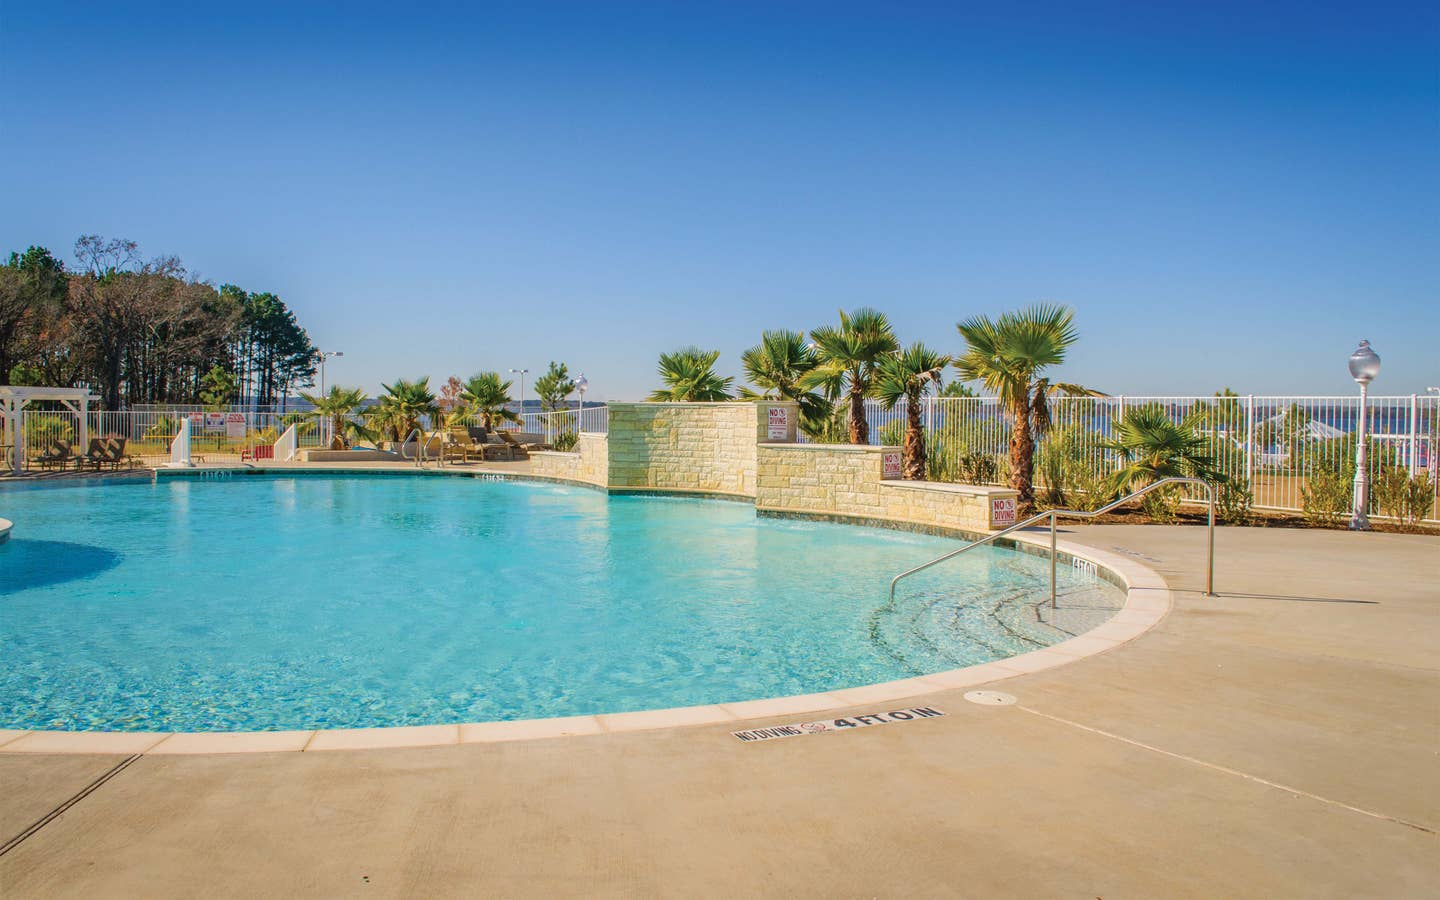 Pool surrounded by palm trees at Villages Resort in Flint, Texas.